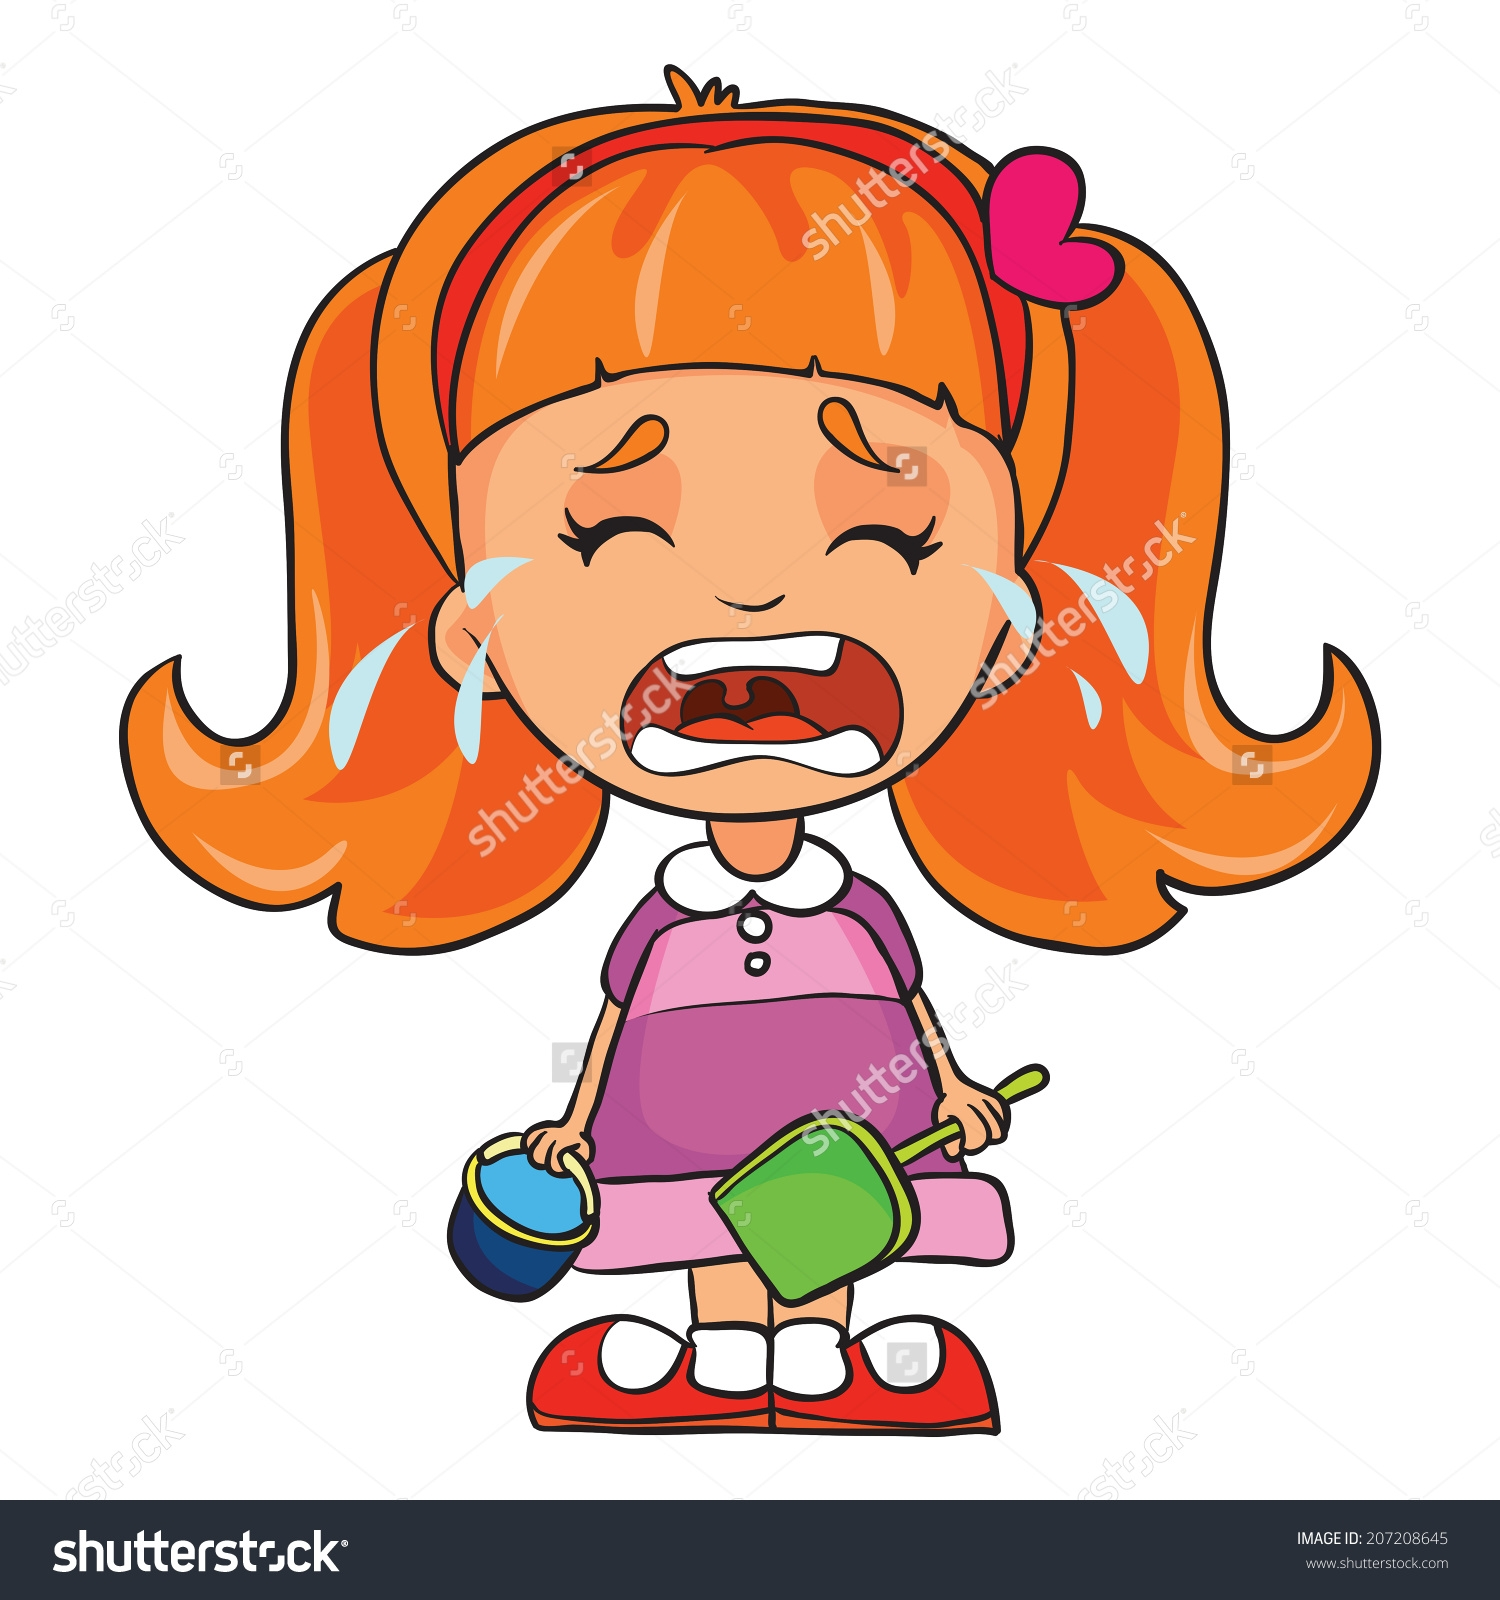 Cry clipart Inspirational Child Crying Clipart » Clipart Station.